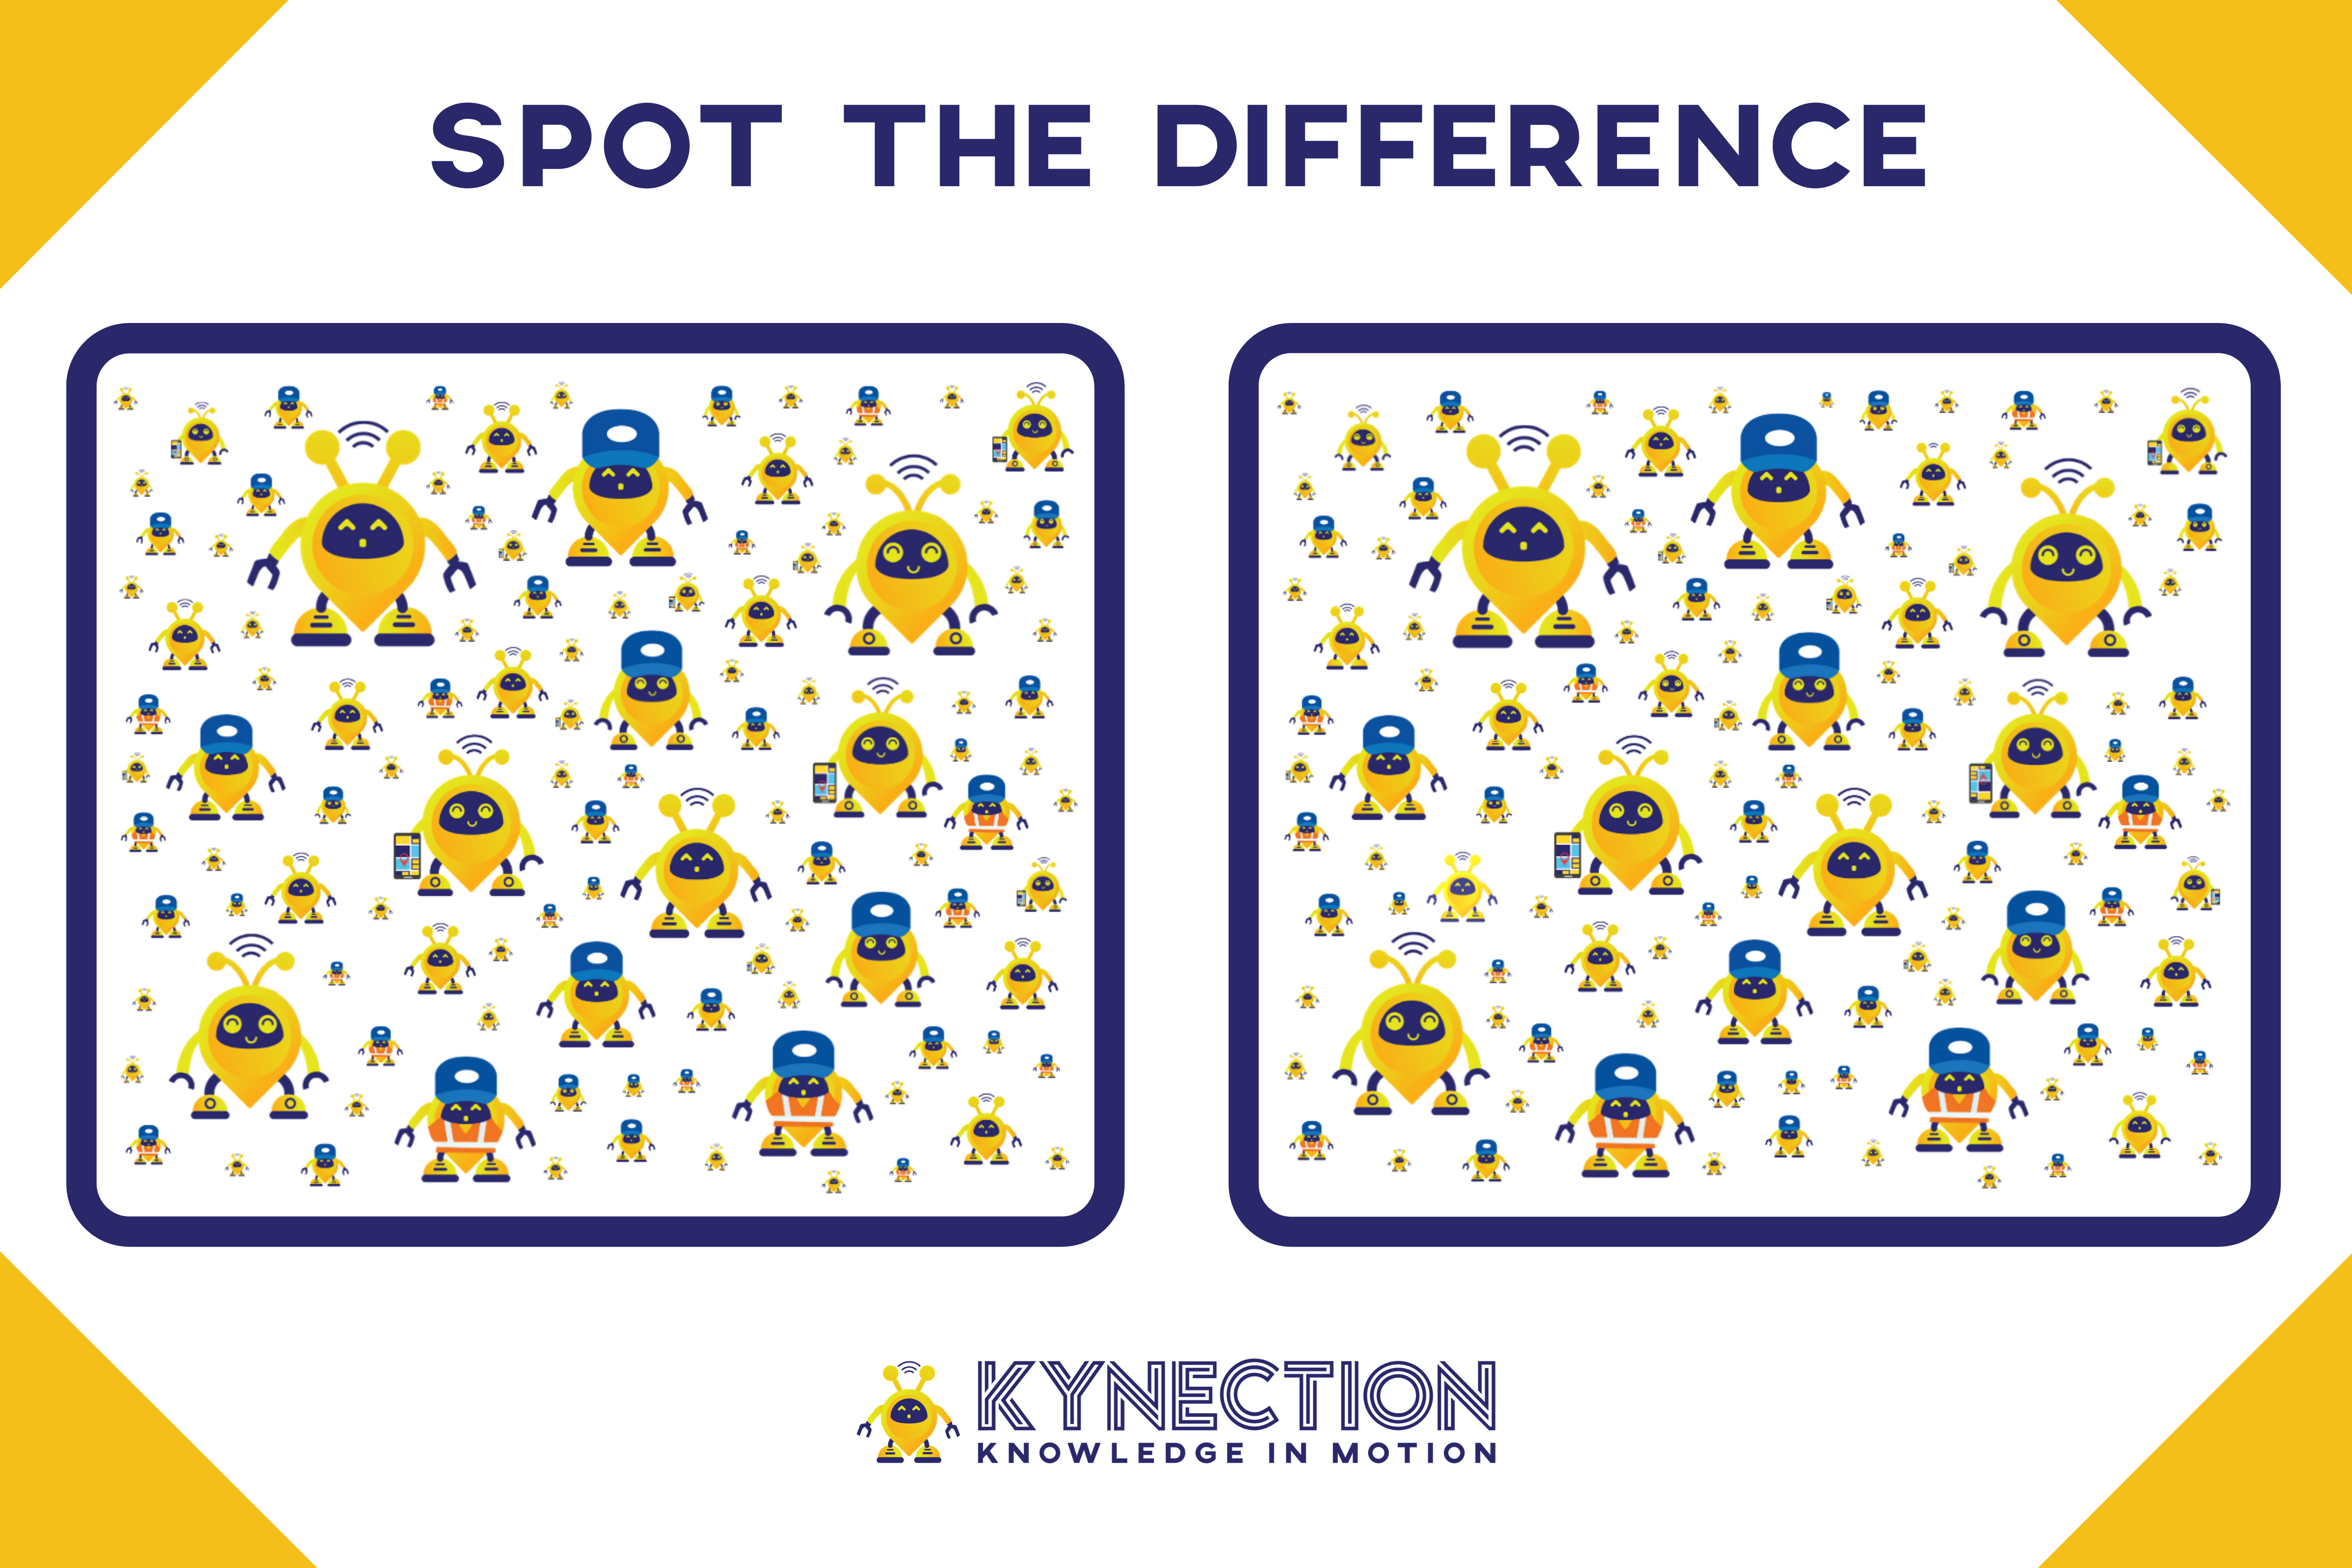 spot the difference image